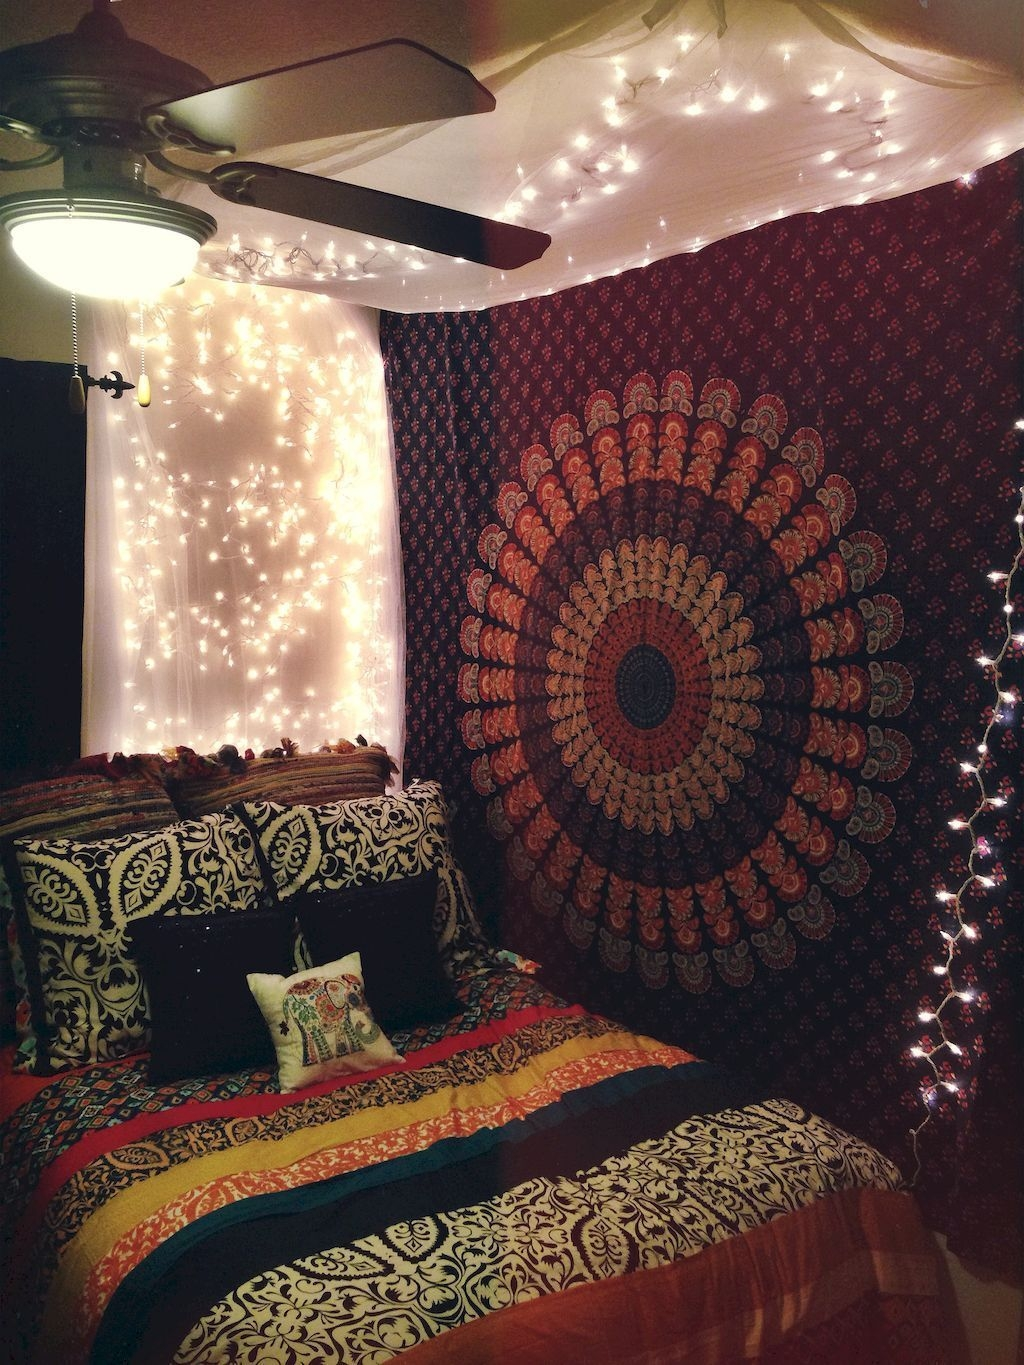 Easy Diy College Apartment Decorating Ideas On A Budget 07